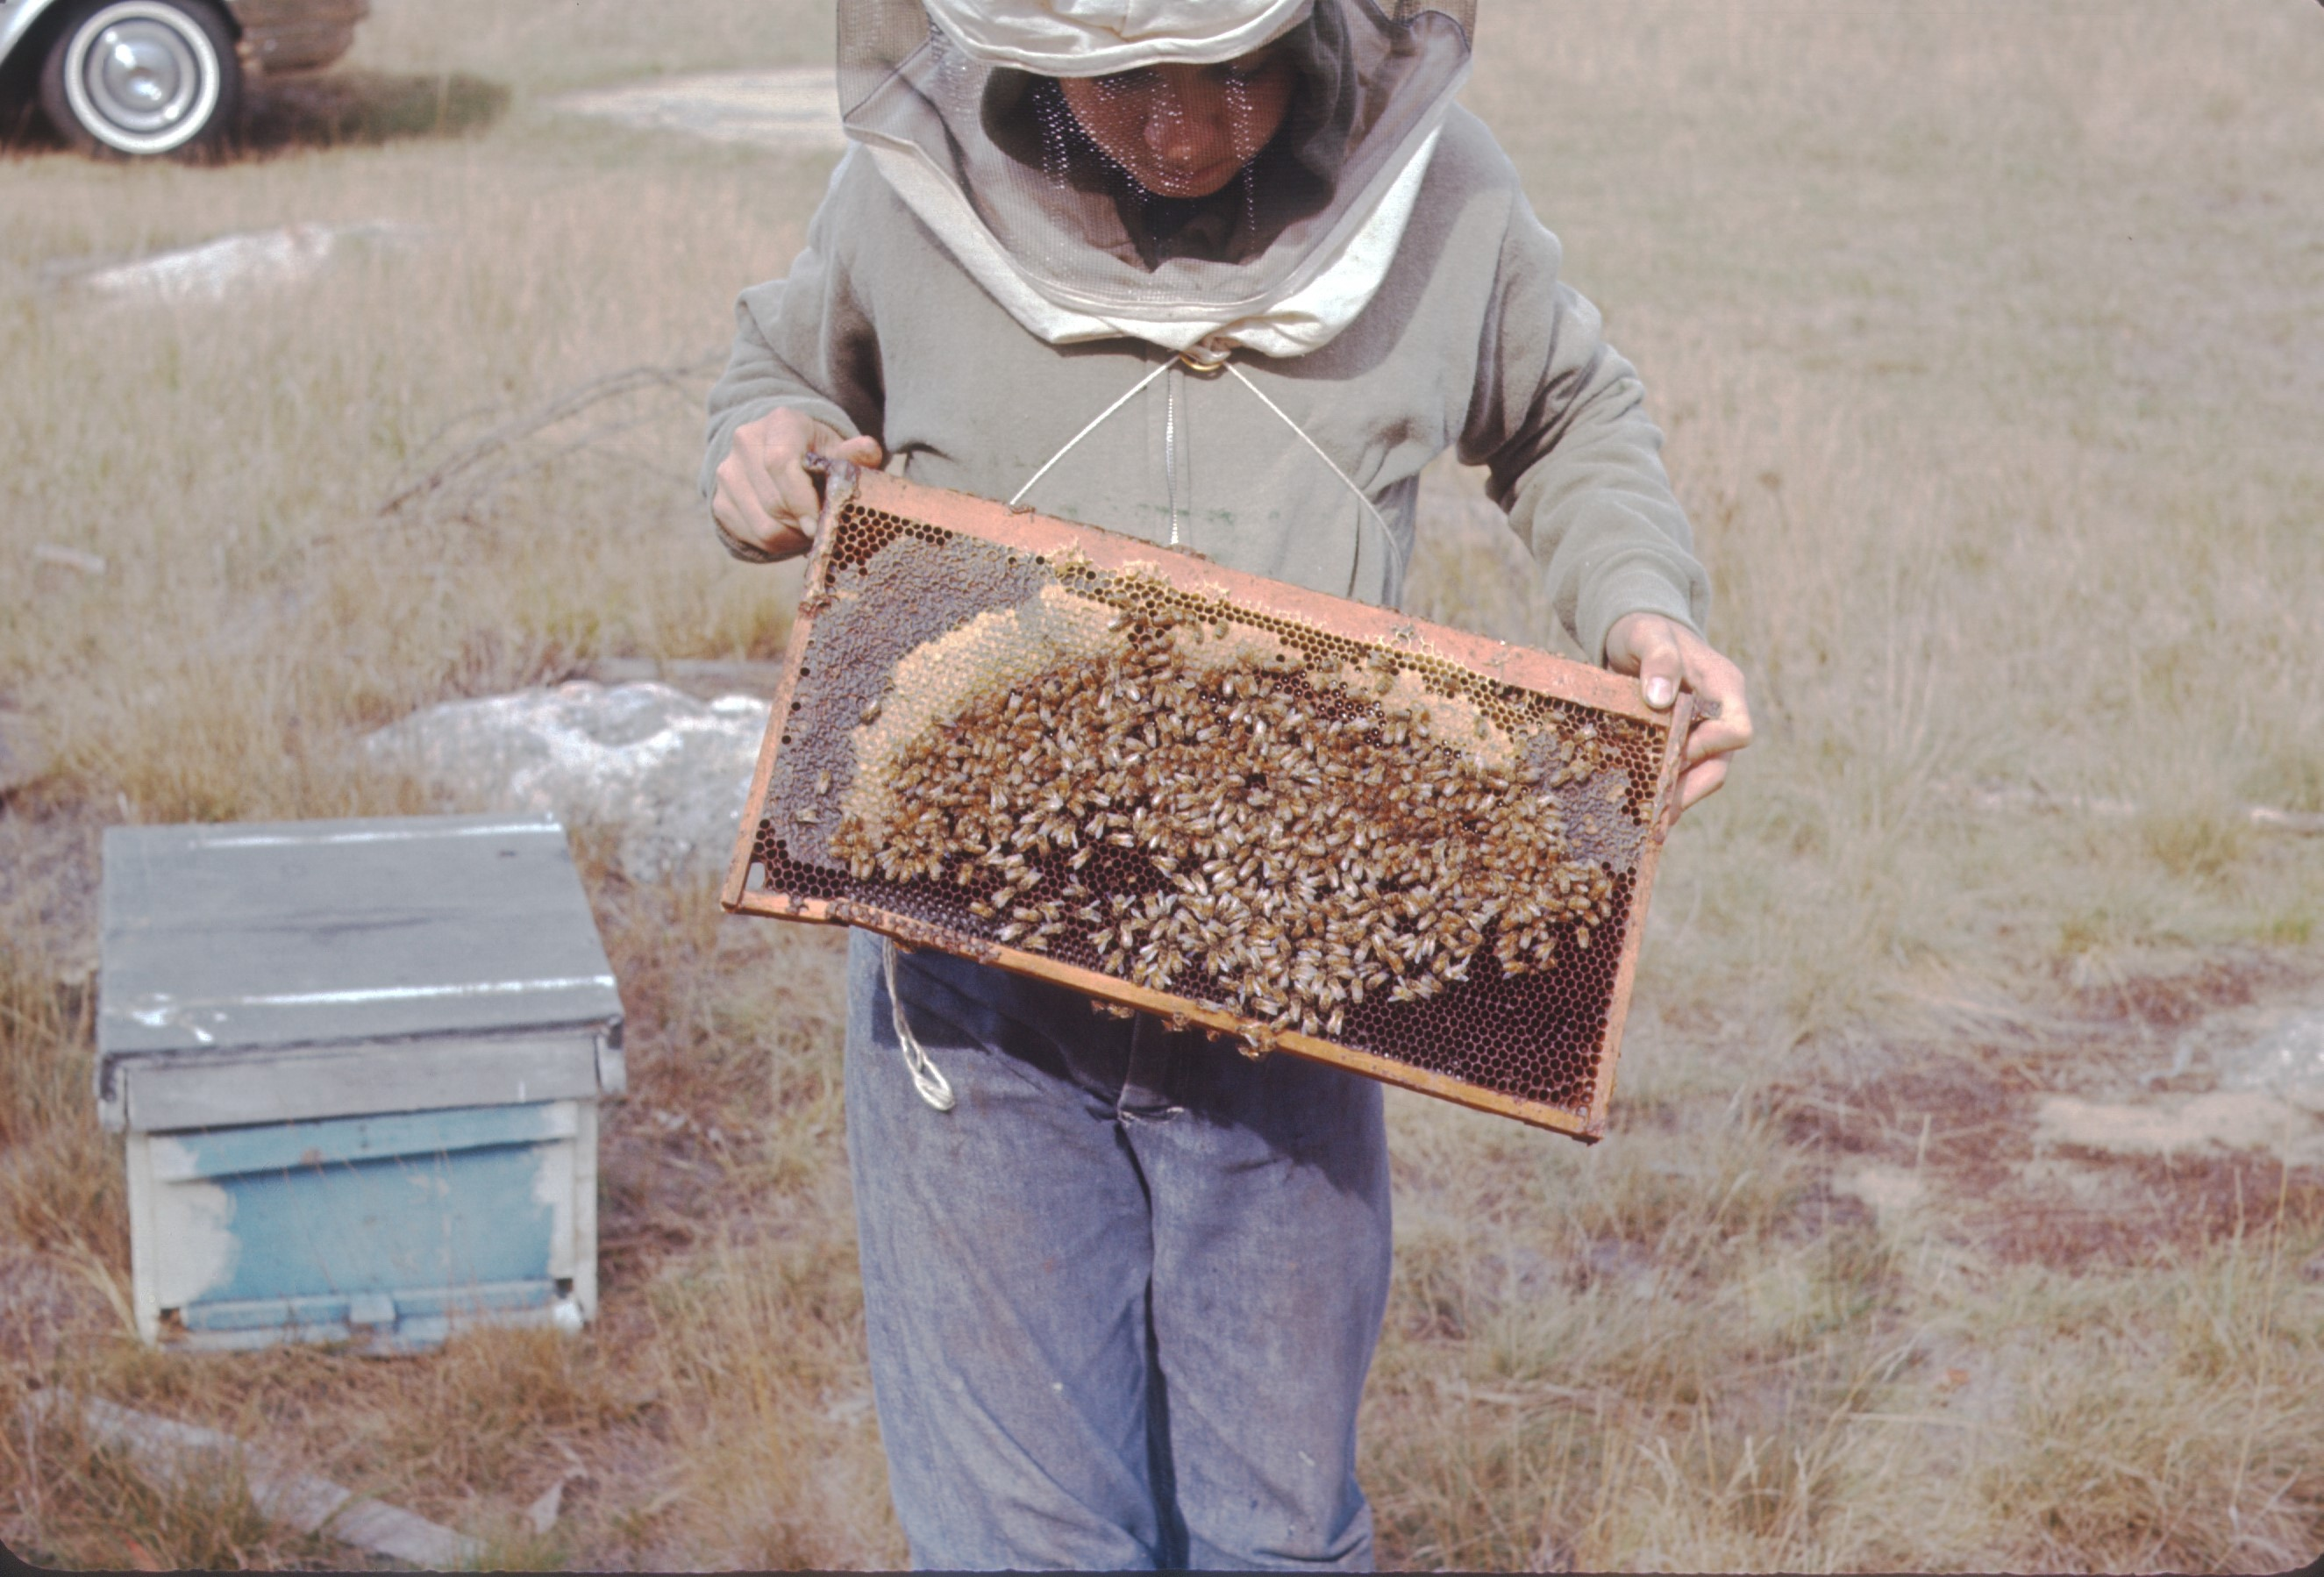 Beekeepers and Honey Farmers in Massachusetts, New York and Louisana